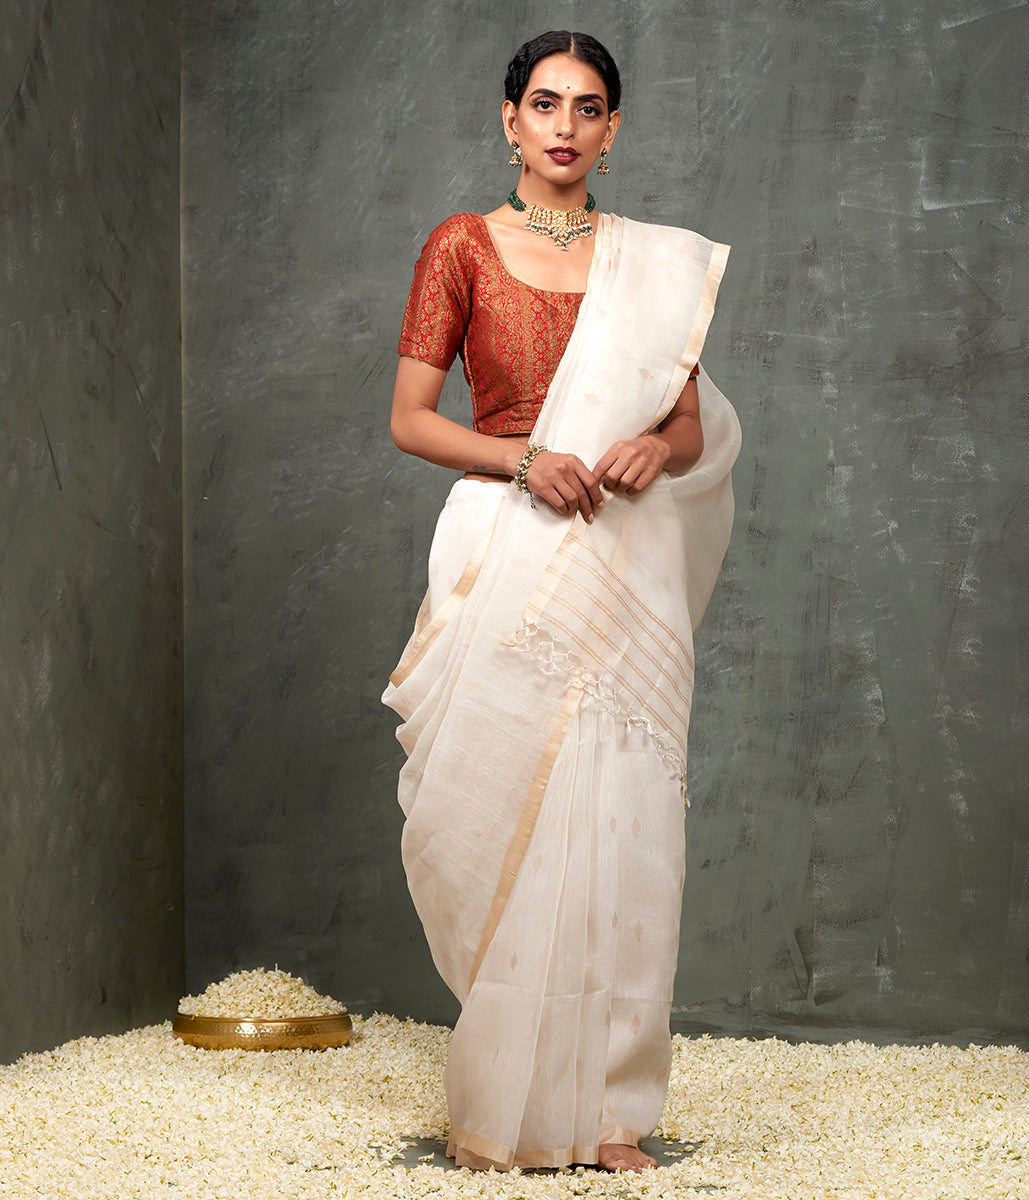 Handwoven Matka Silk Saree with a Muslin Pallu with The Tree of Life Woven in Jute